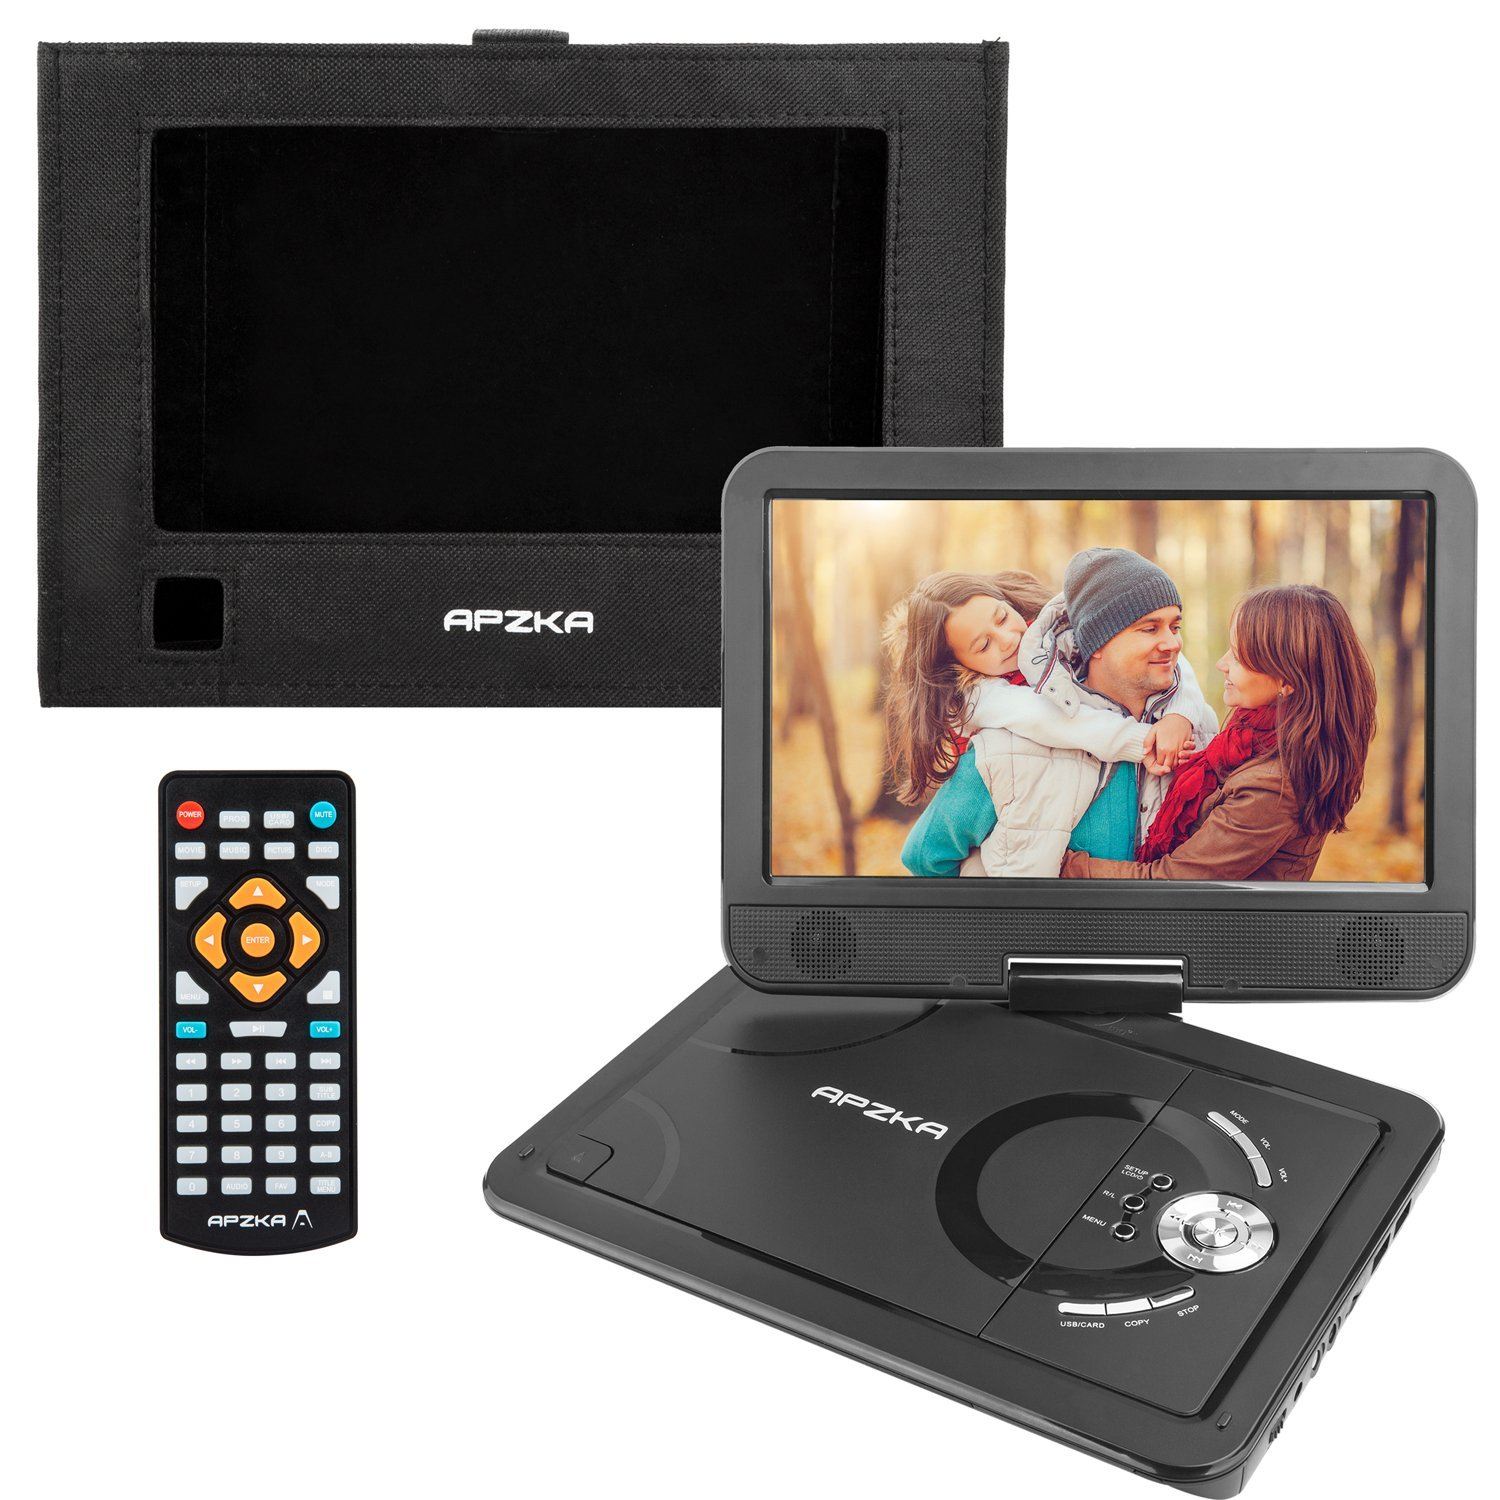 Apzka 5 Hours 10.5 Inch Portable DVD Player with Built-in Lithium Battery, 1.8M Power Adapter and Car Charger, USB Port and SD Card. 1080P Video Supported, Black